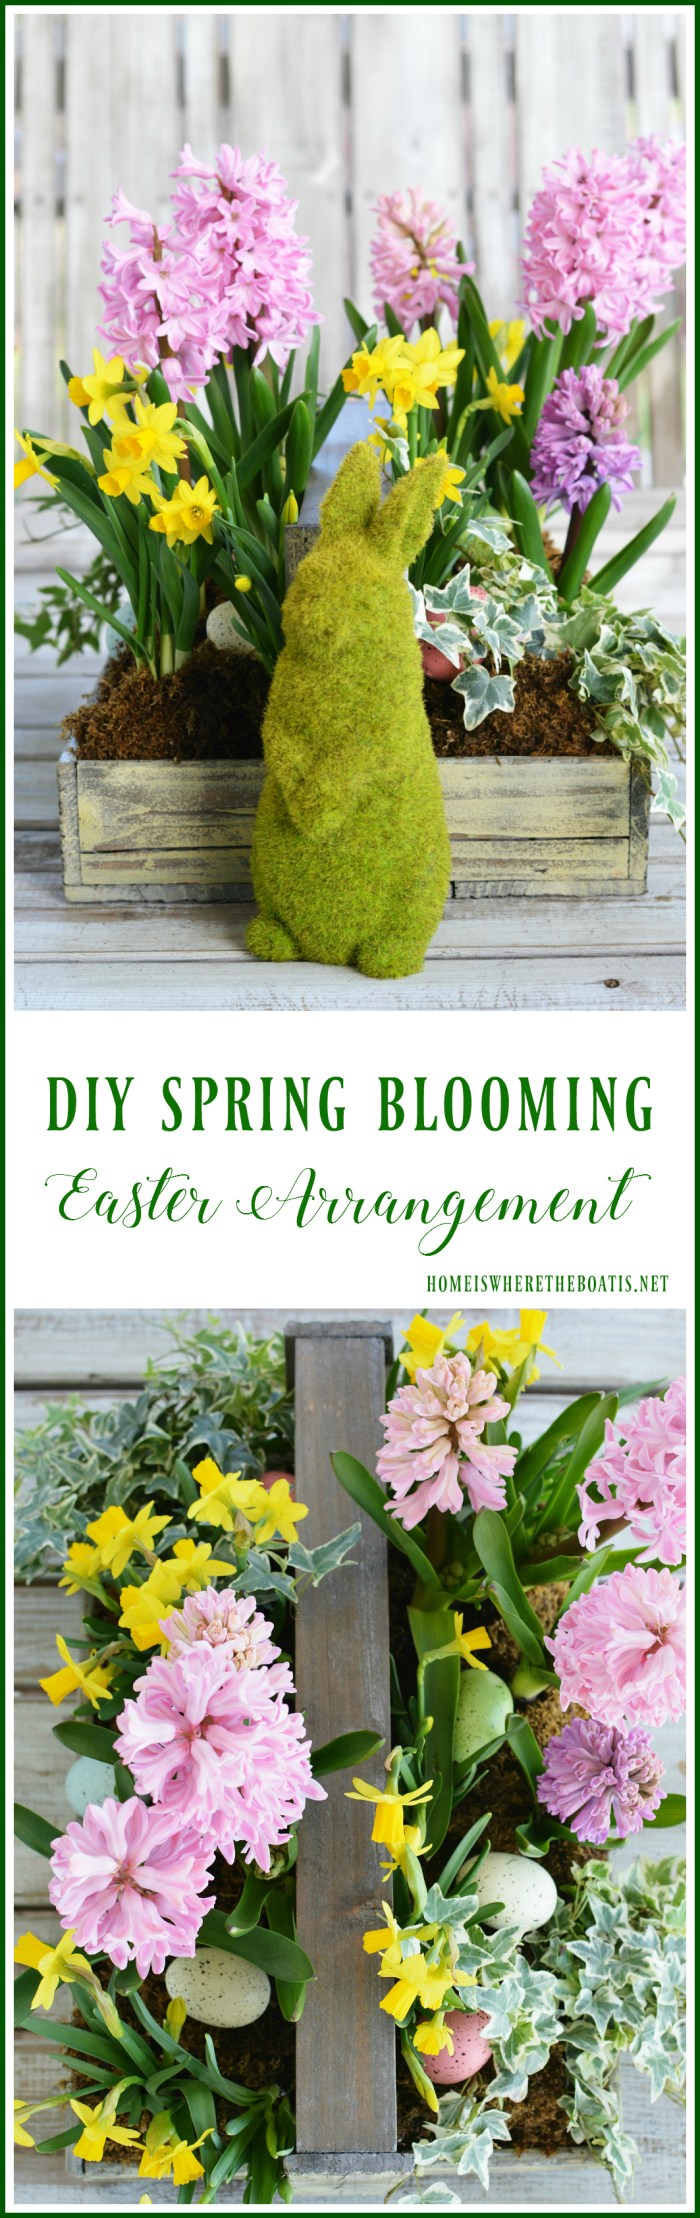 DIY Spring Blooming Easter Arrangement | ©homeiswheretheboatis.net #spring #flowerarrangement #Easter